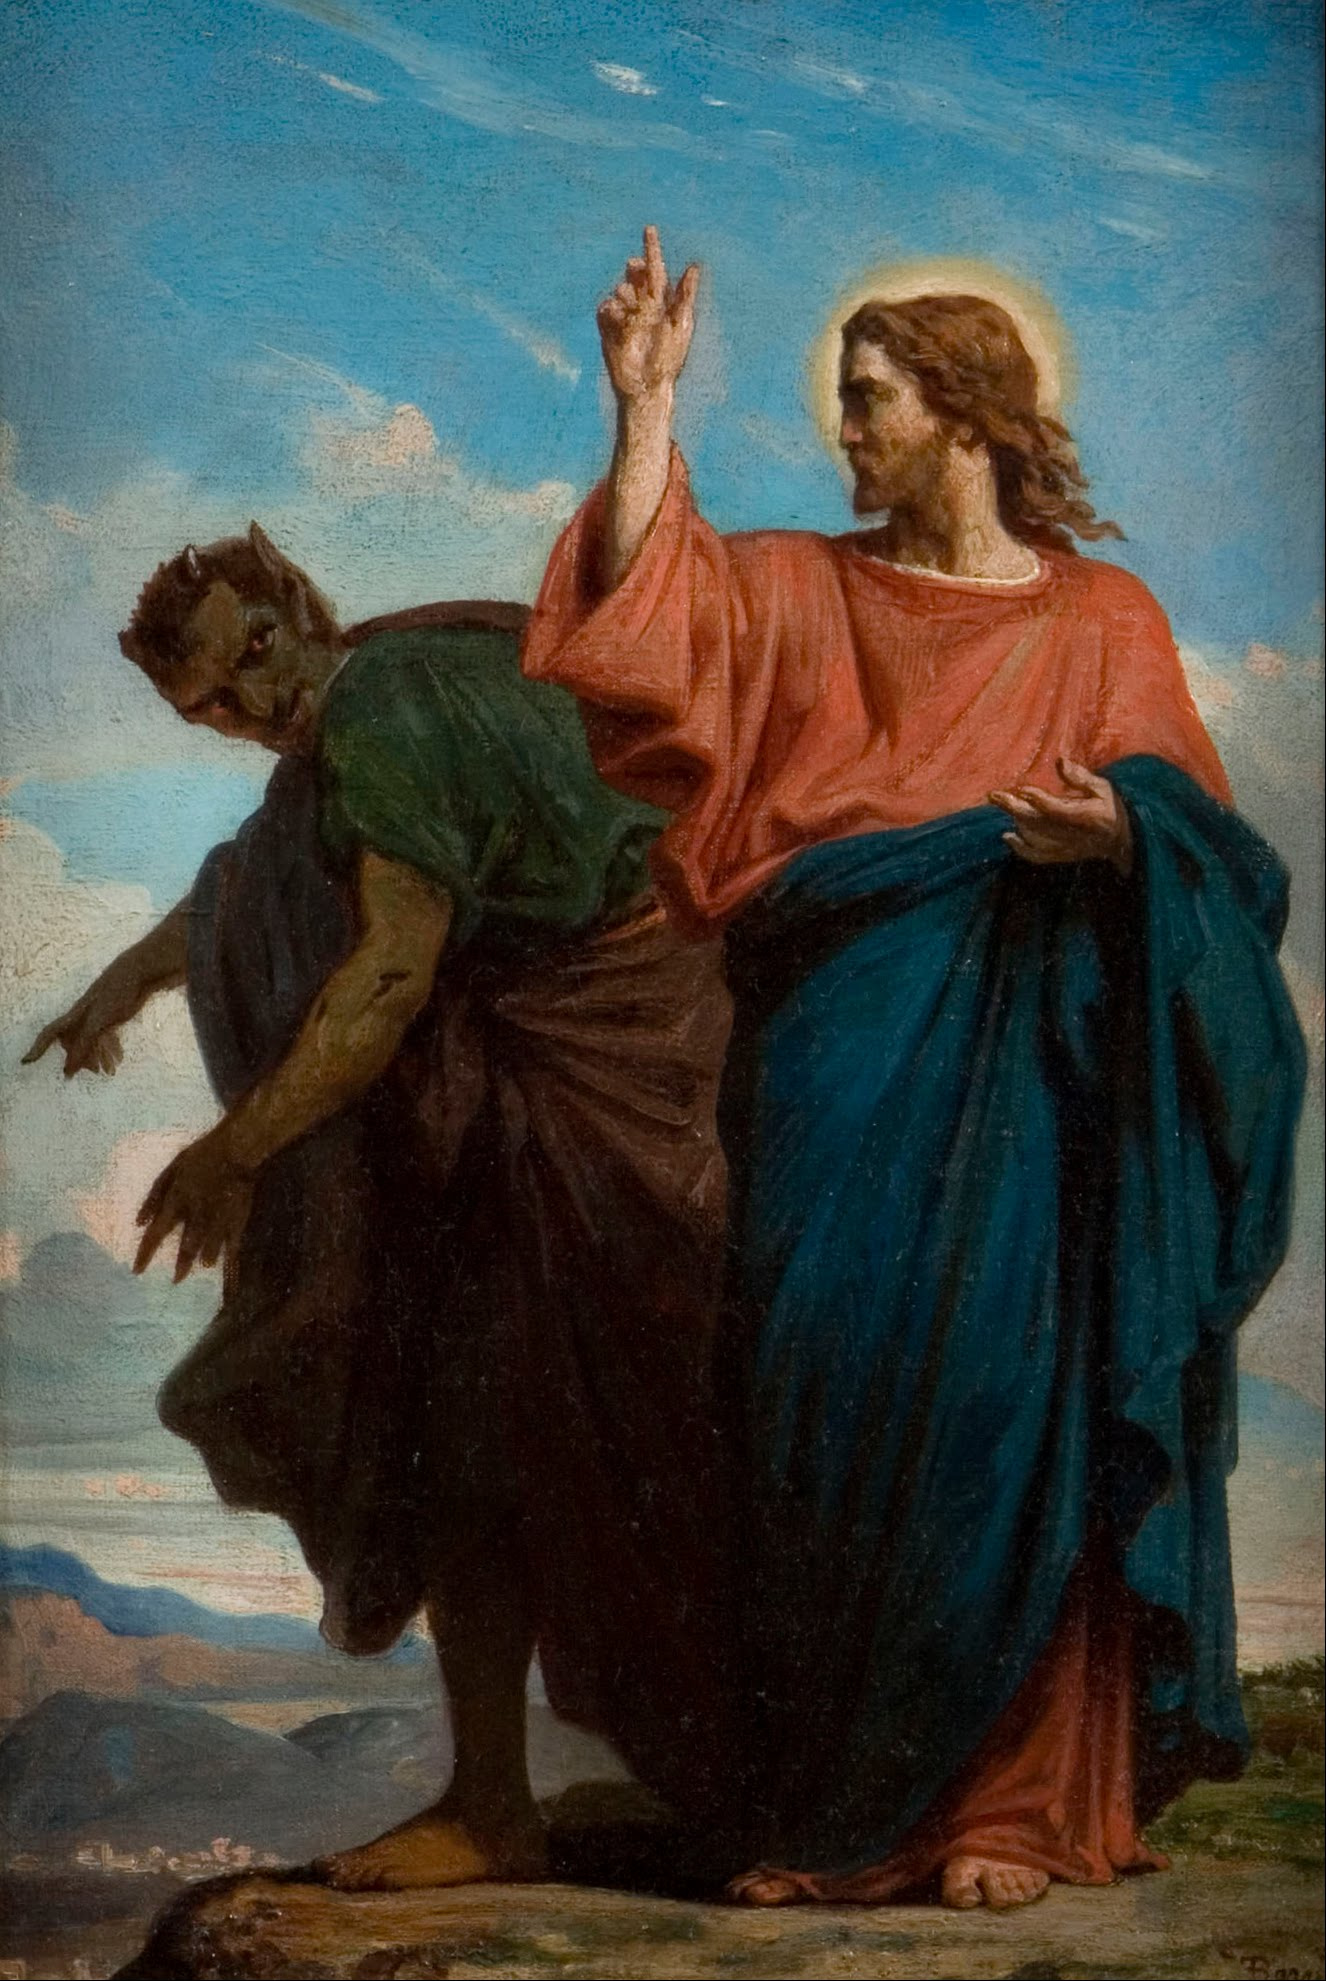 https://upload.wikimedia.org/wikipedia/commons/5/54/F%C3%A9lix_Joseph_Barrias_-_The_Temptation_of_Christ_by_the_Devil_-_Google_Art_Project.jpg